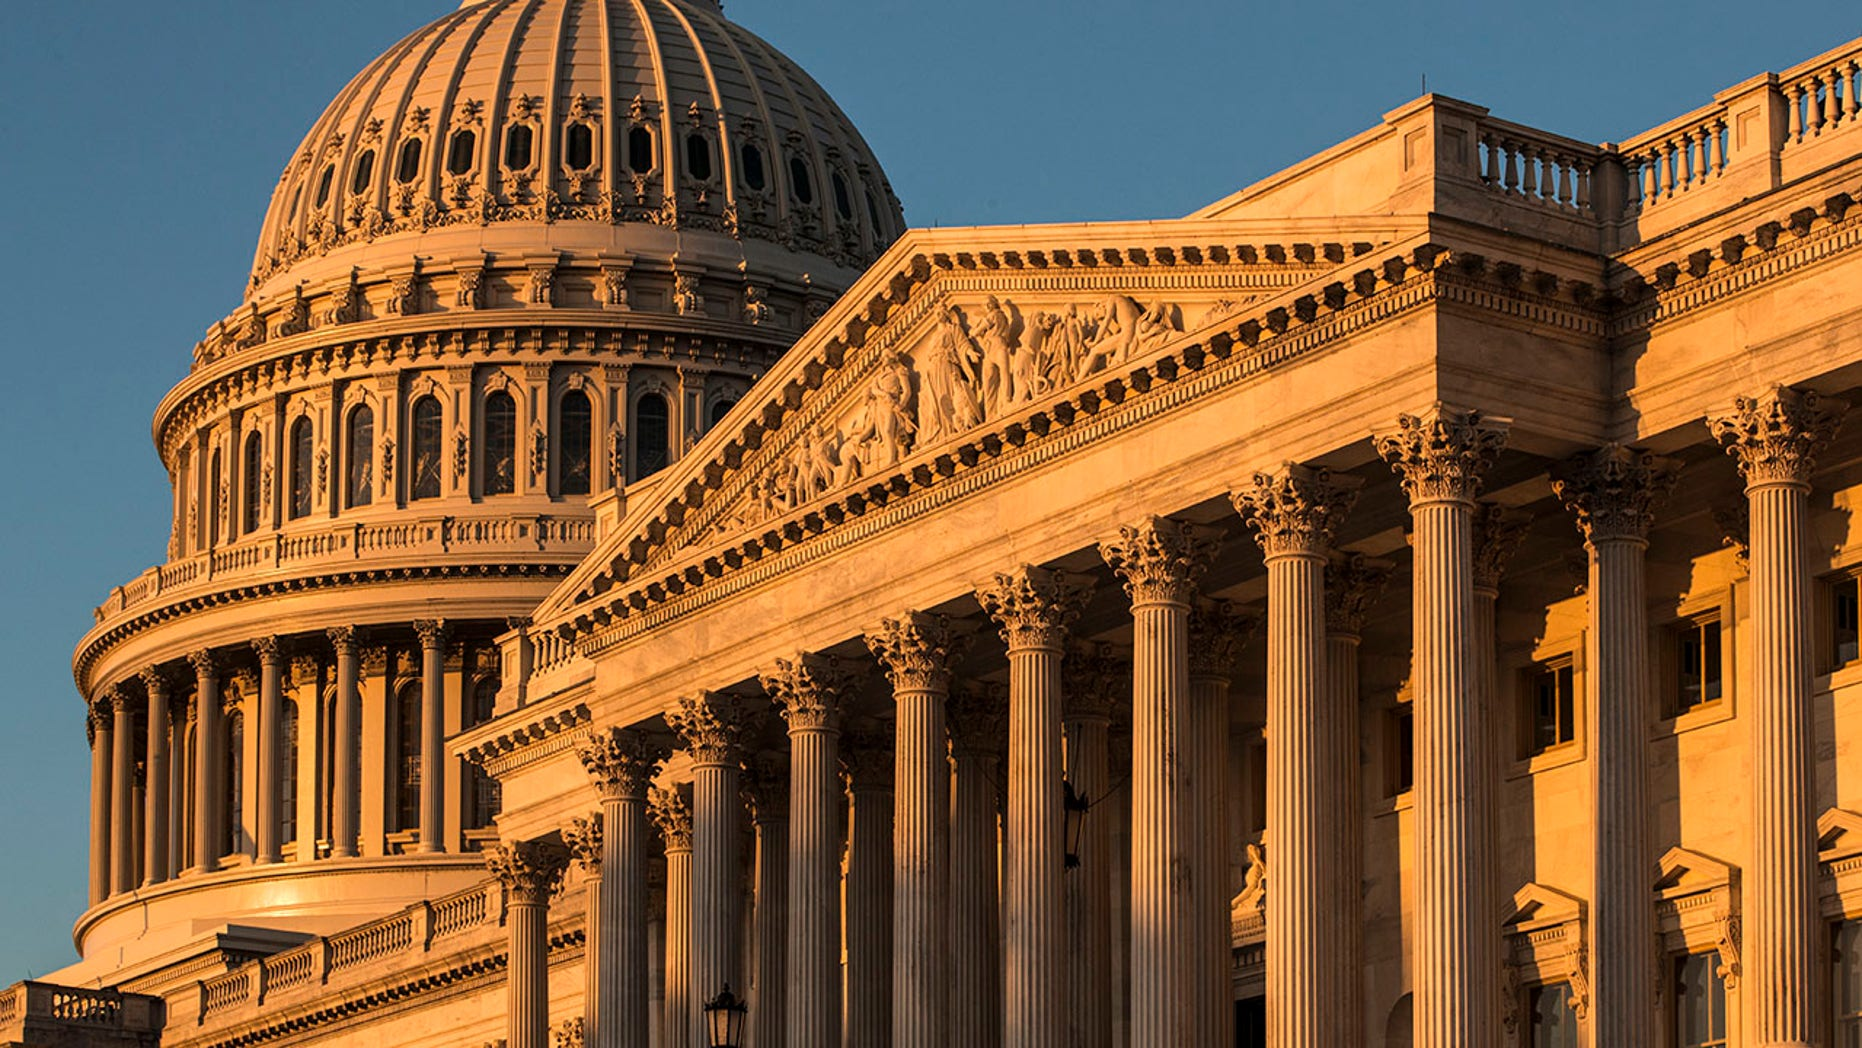 FILE - This Oct. 1, 2018, file photo, shows the Capitol at sunrise in Washington. A handful of senior House lawmakers, frustrated by more than a decade of frozen congressional salaries, are quietly exploring whether to accept an annual pay raise that they've shunned since Barack Obama was first president. (AP Photo/J. Scott Applewhite, File)